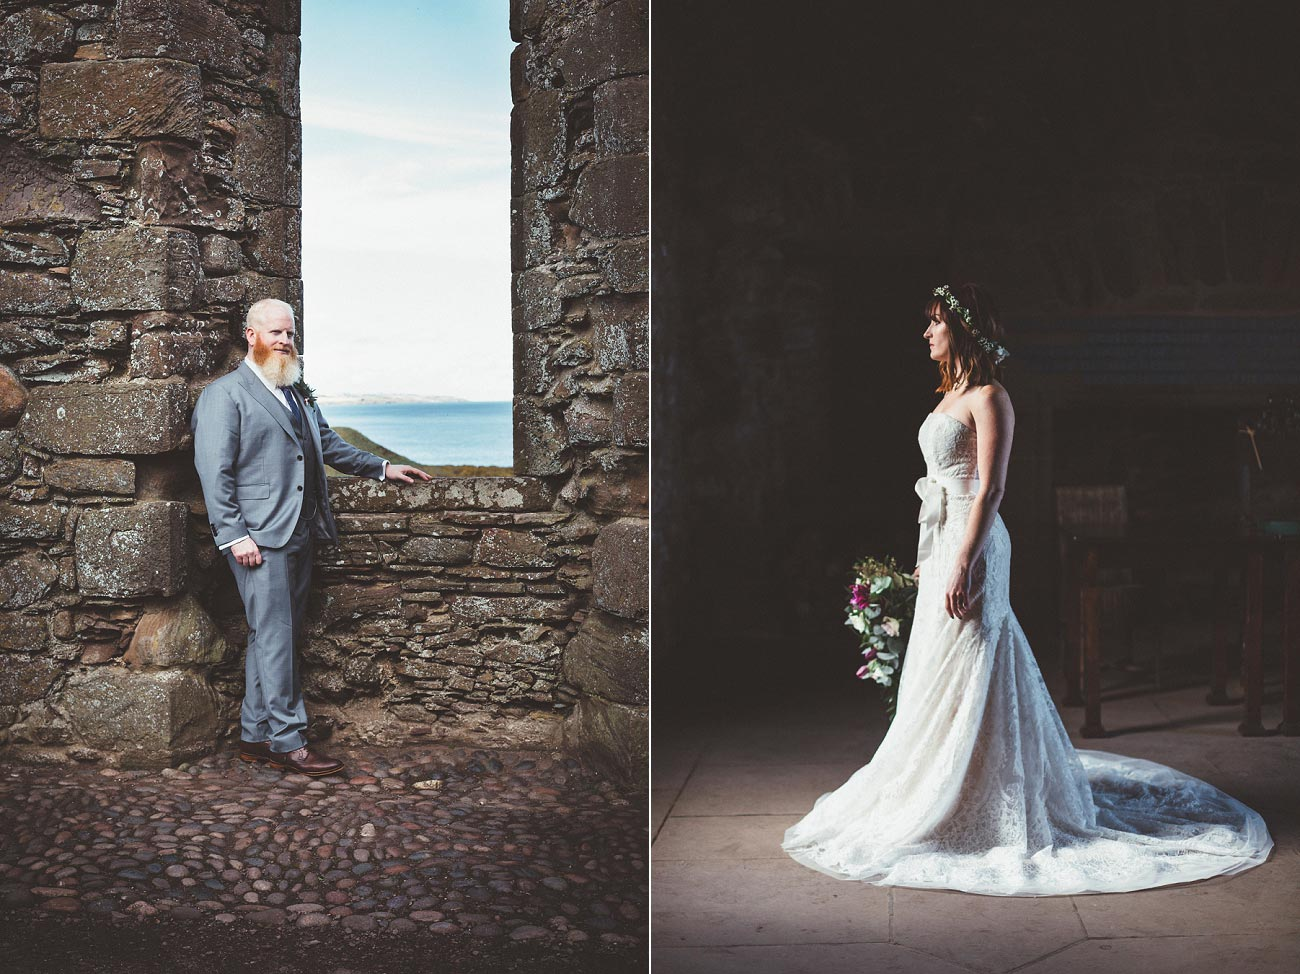 dunnottar castle elopement wedding photographer scotland scottish highlands abderdeenshire aj 0034